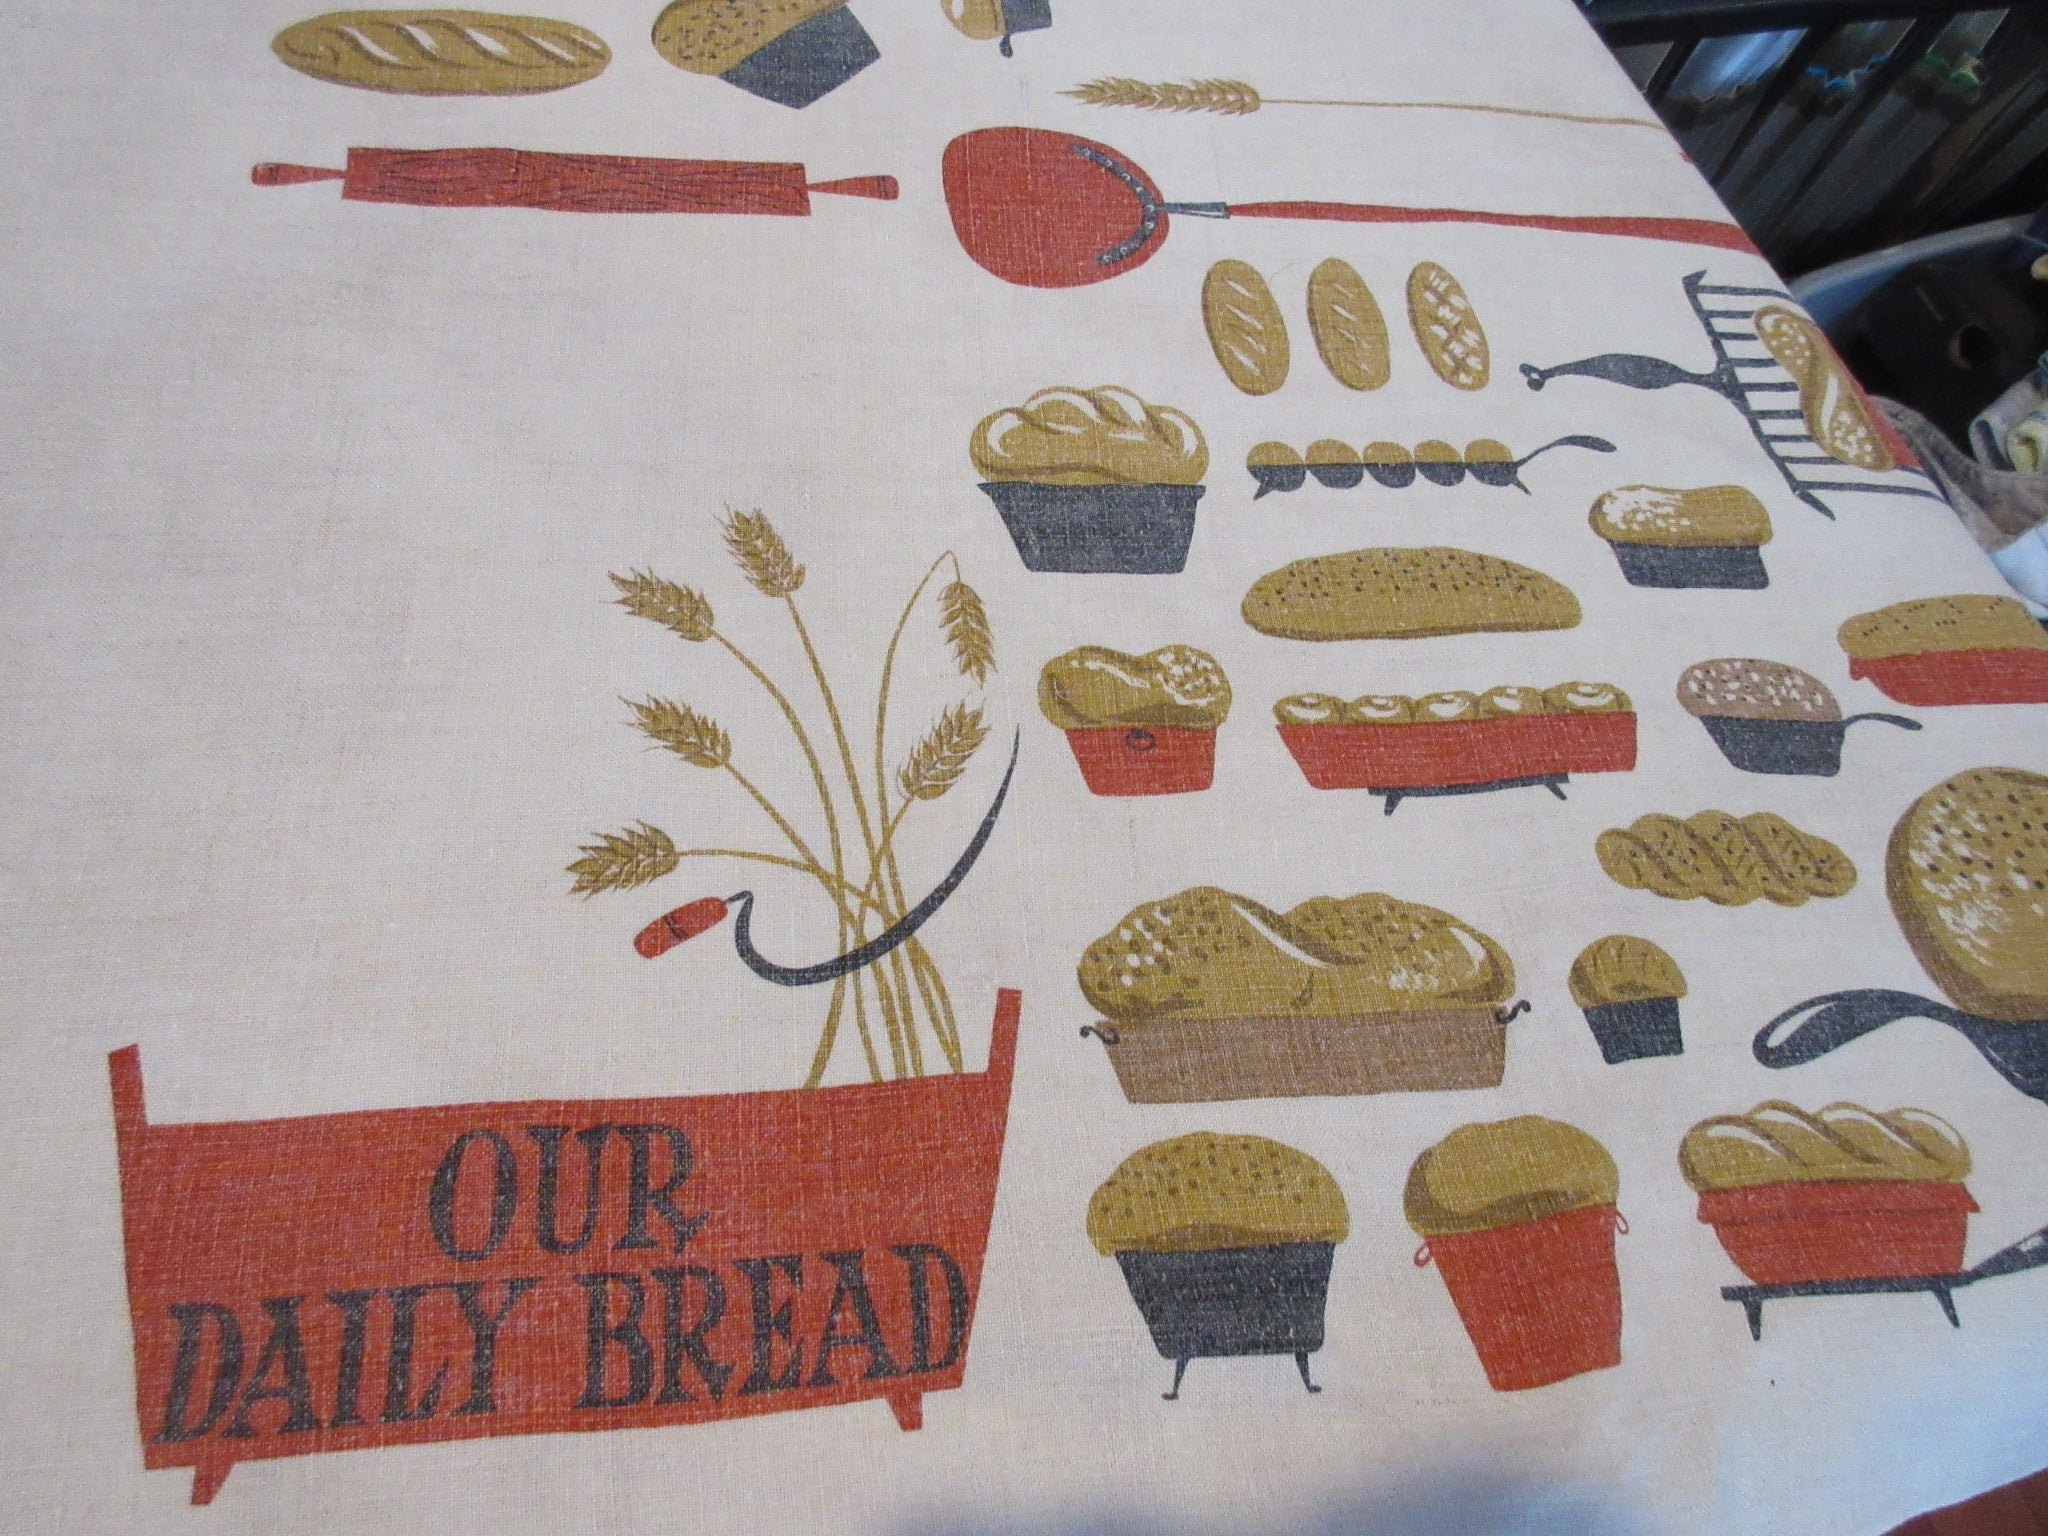 Rare Lord's Prayer Bread Thanksgiving Novelty Vintage Printed Tablecloth (65 X 50)